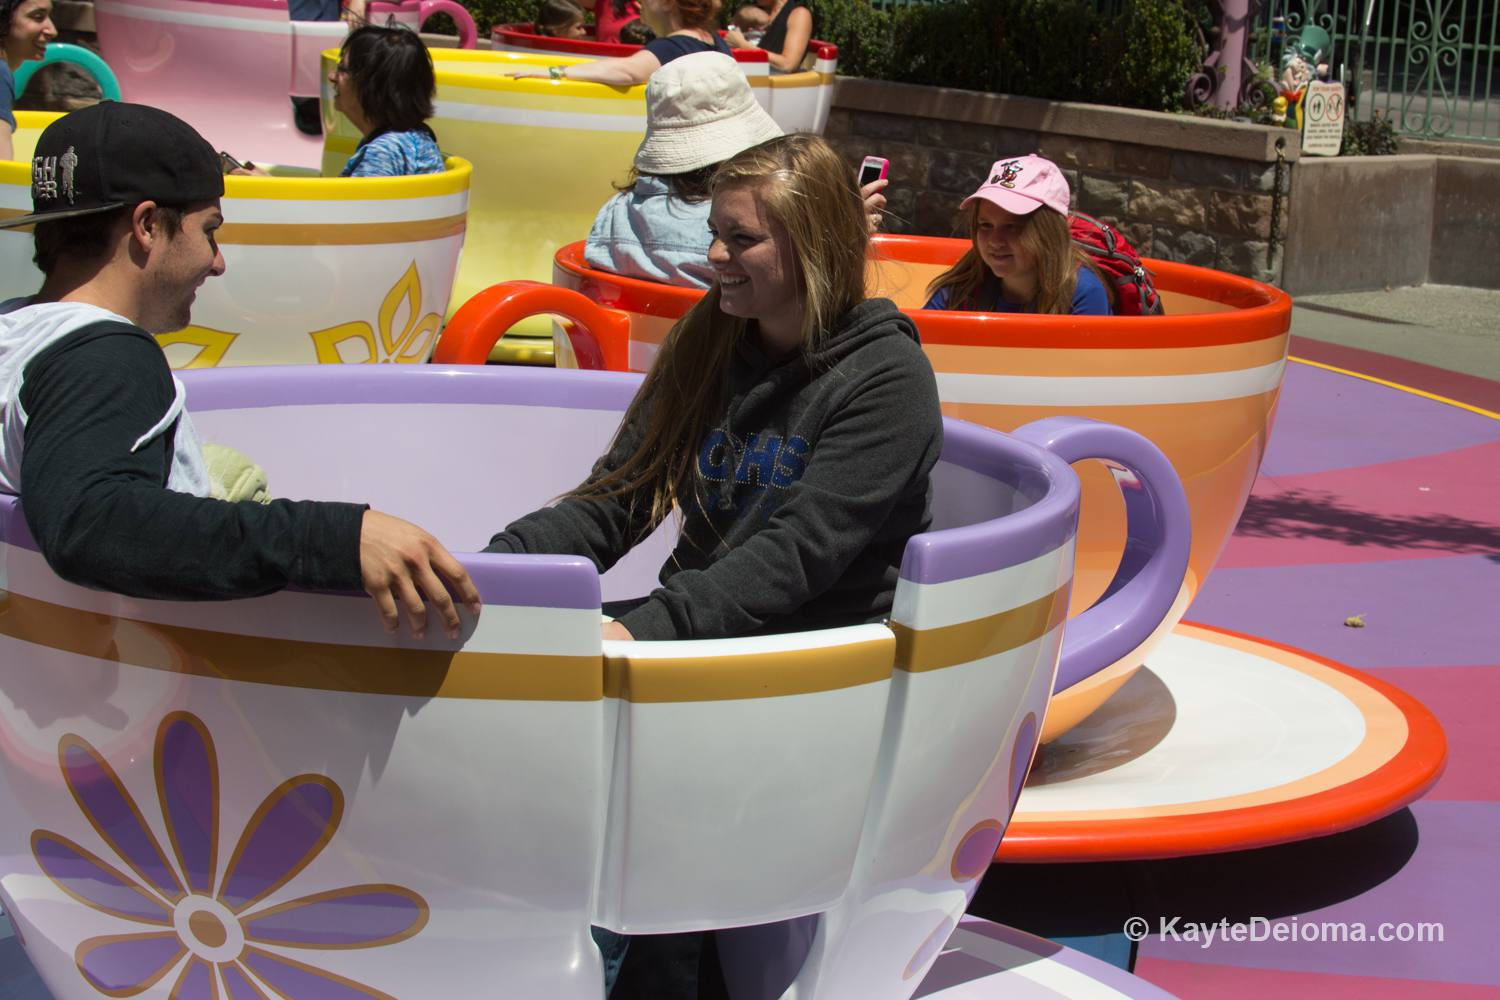 Mad Hatter's Tea Party at Disneyland, California